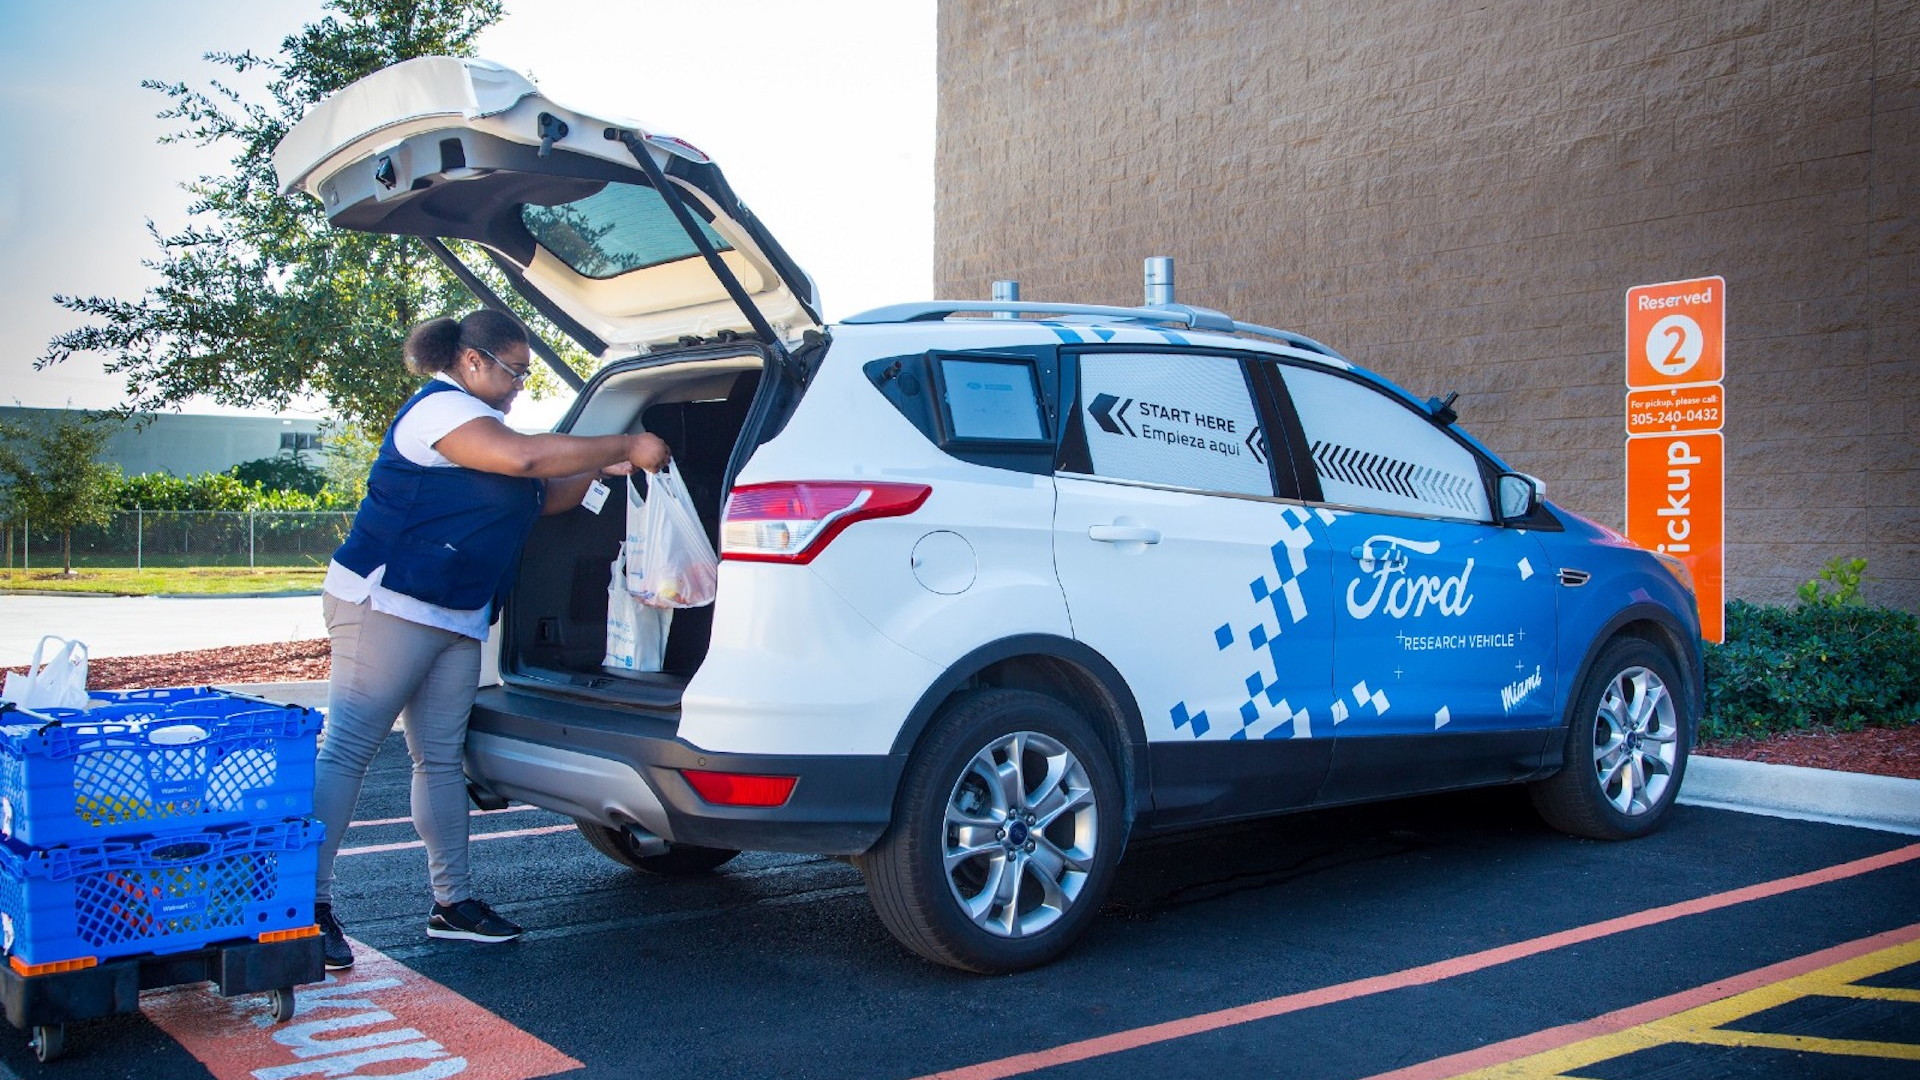 Ford partners with Walmart for self-driving delivery service